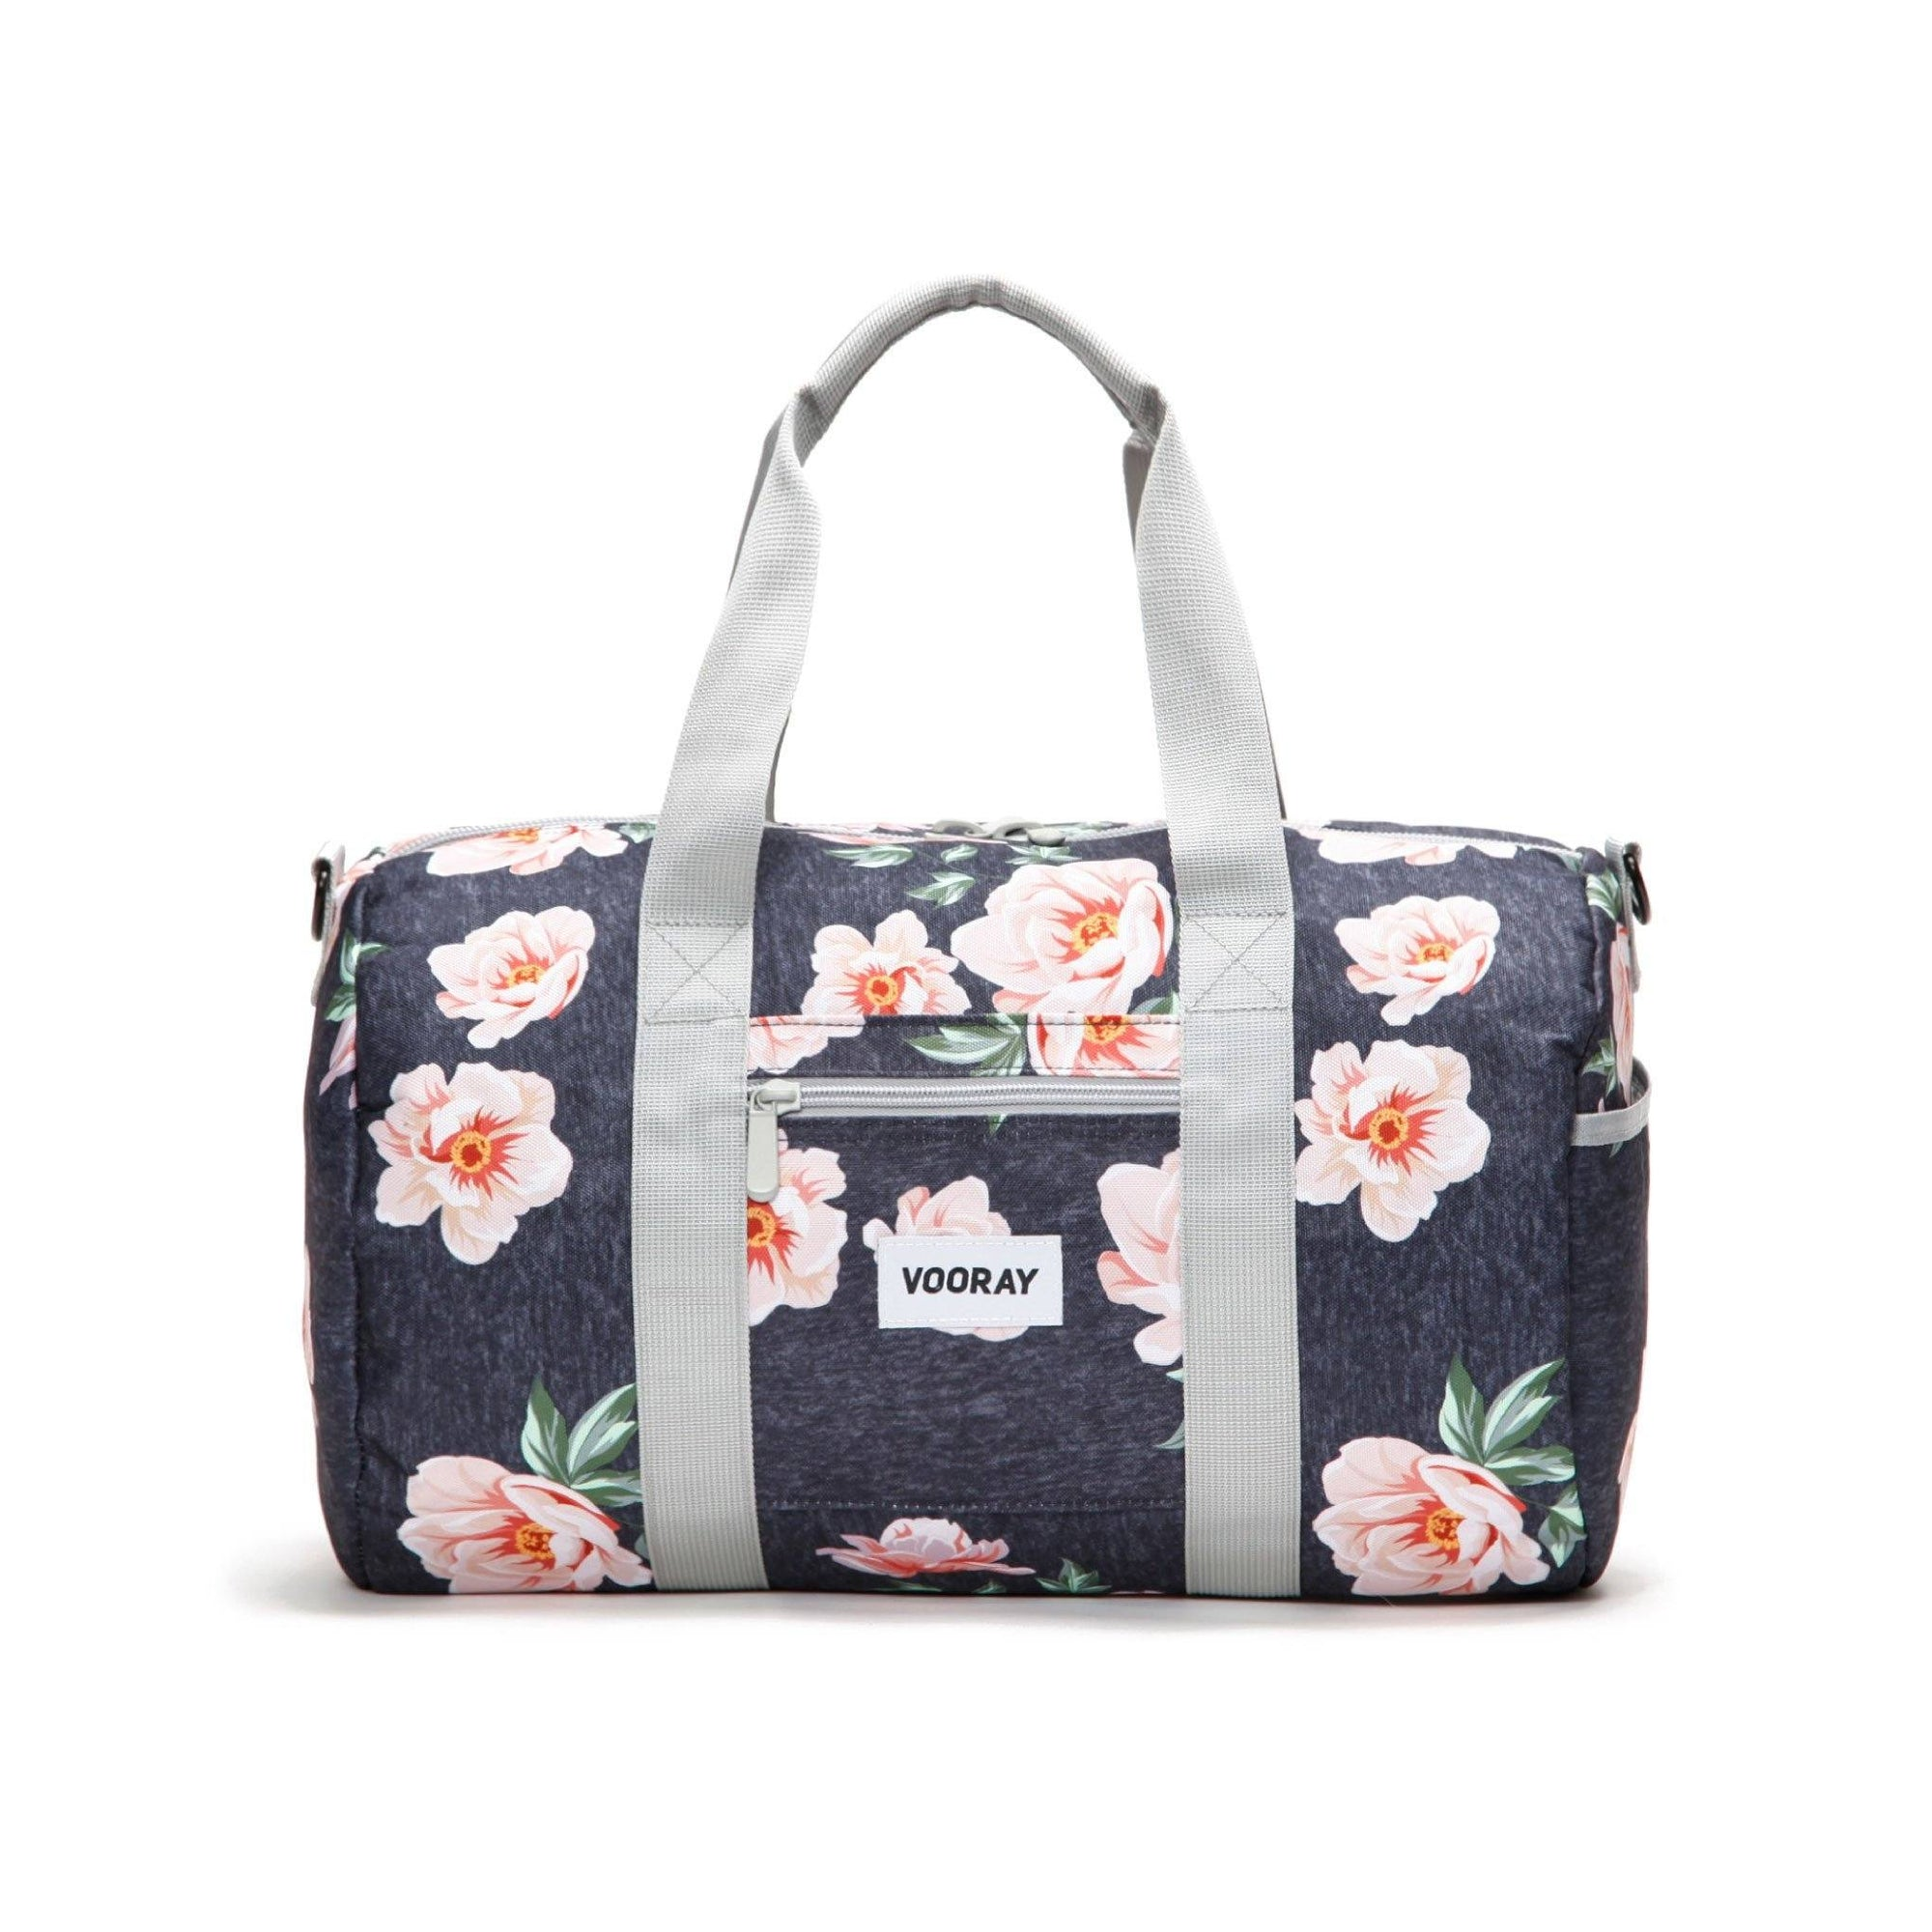 Vooray Roadie Duffel Bag - Rose Navy